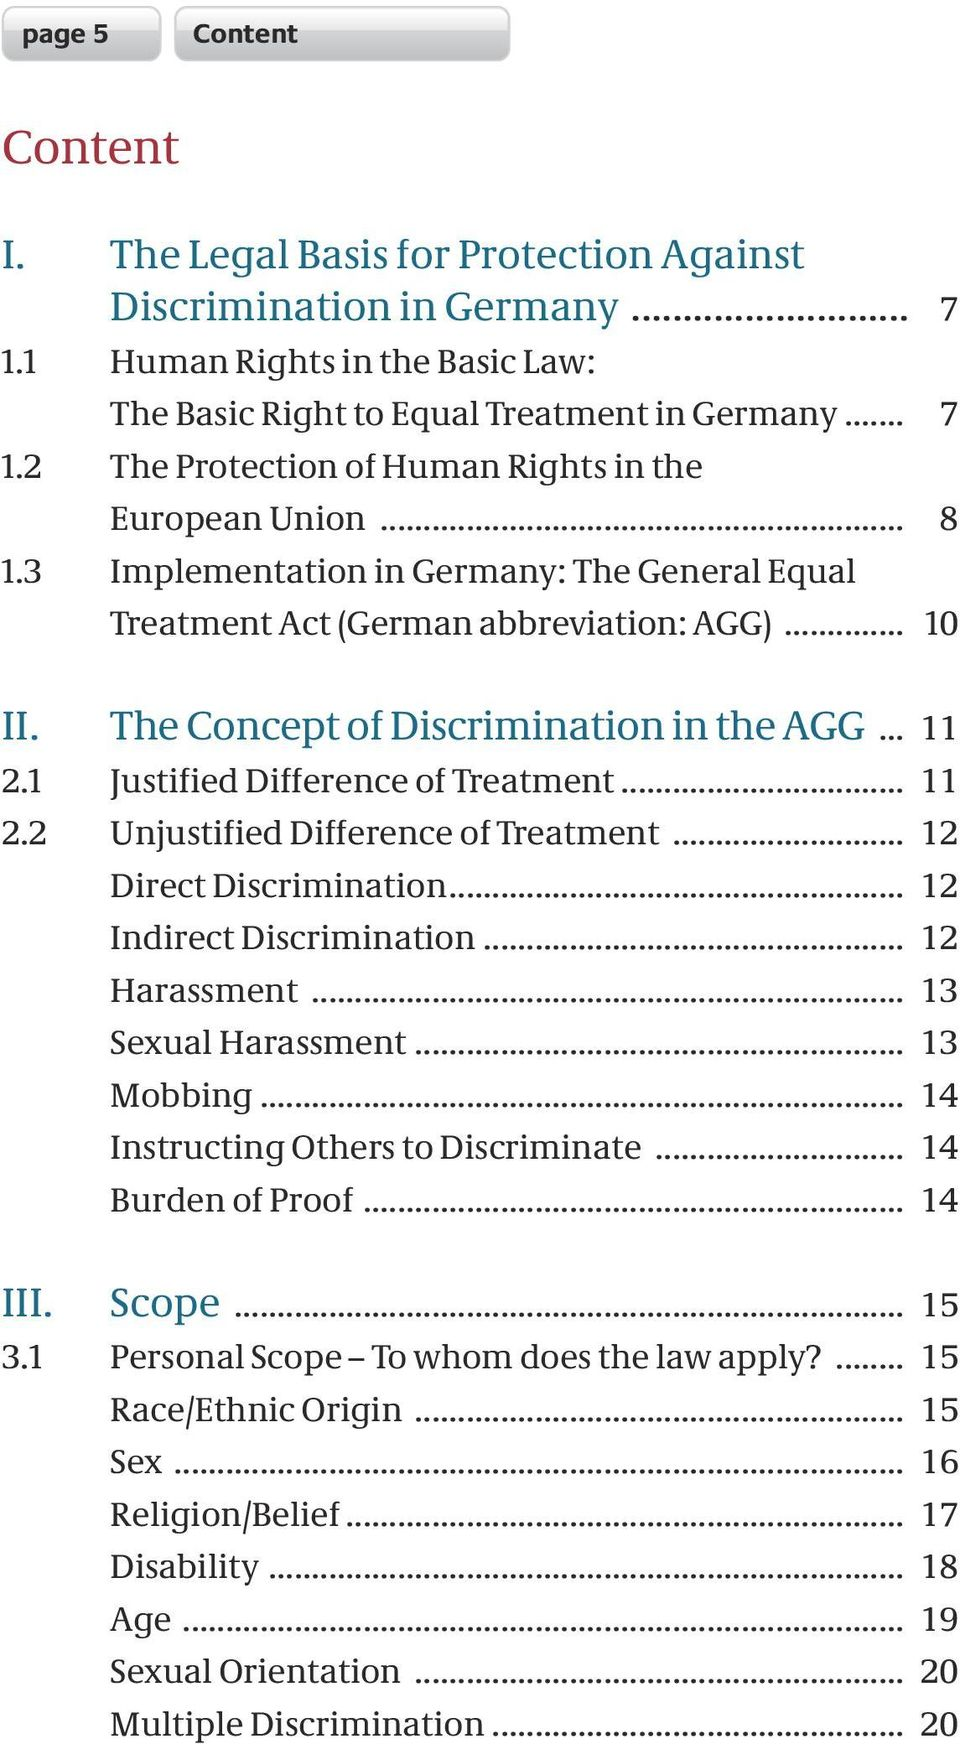 .. 12 Direct Discrimination... 12 Indirect Discrimination... 12 Harassment... 13 Sexual Harassment... 13 Mobbing... 14 Instructing Others to Discriminate... 14 Burden of Proof... 14 III. Scope... 15 3.